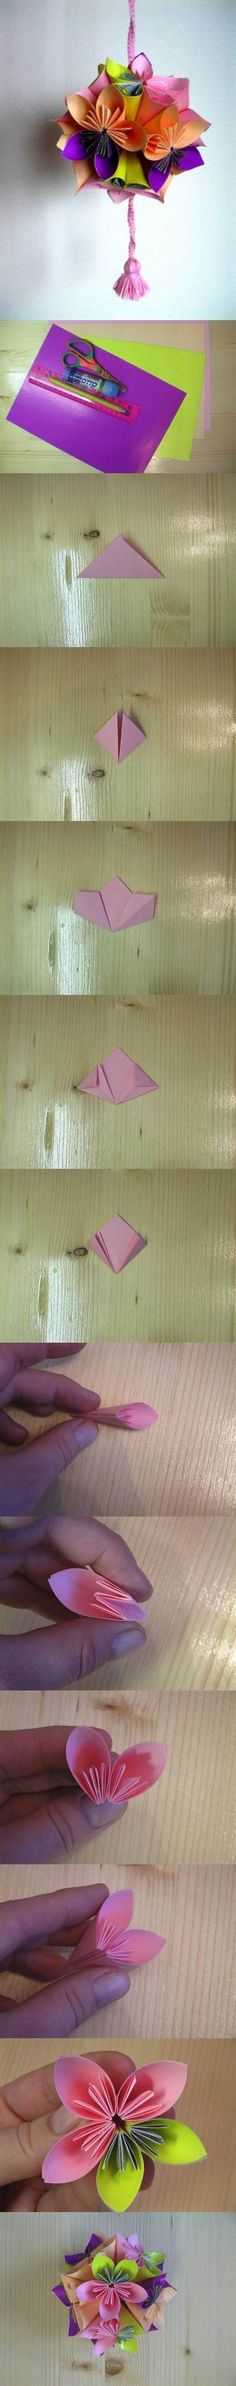 DIY Origami Paper Flower Ball | iCreativeIdeas.com LIKE Us on Facebook ==> https://www.facebook.com/icreativeideas